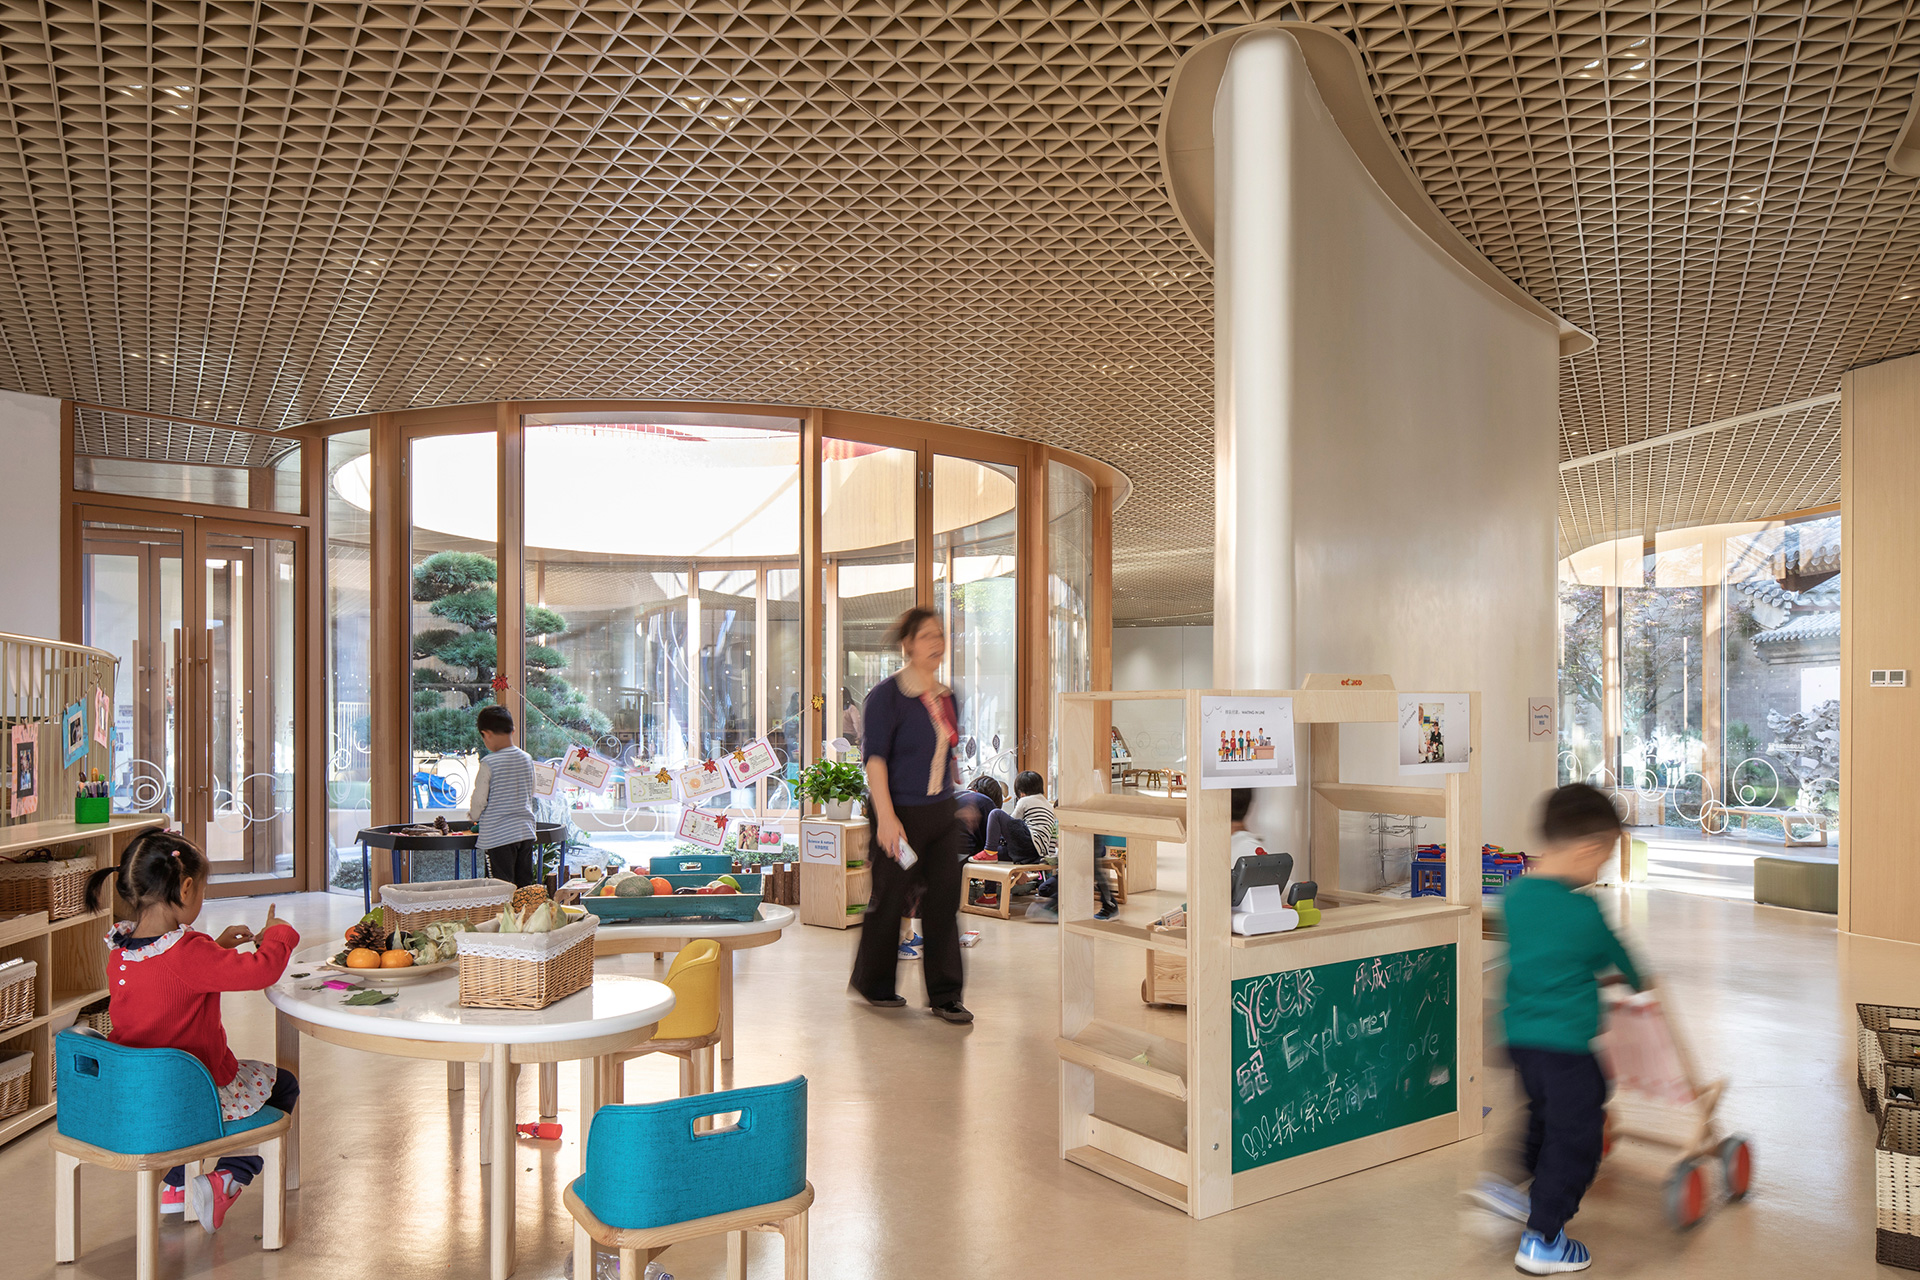 Inside the borderless learning space | YueCheng Courtyard Kindergarten designed by MAD | STIRworld